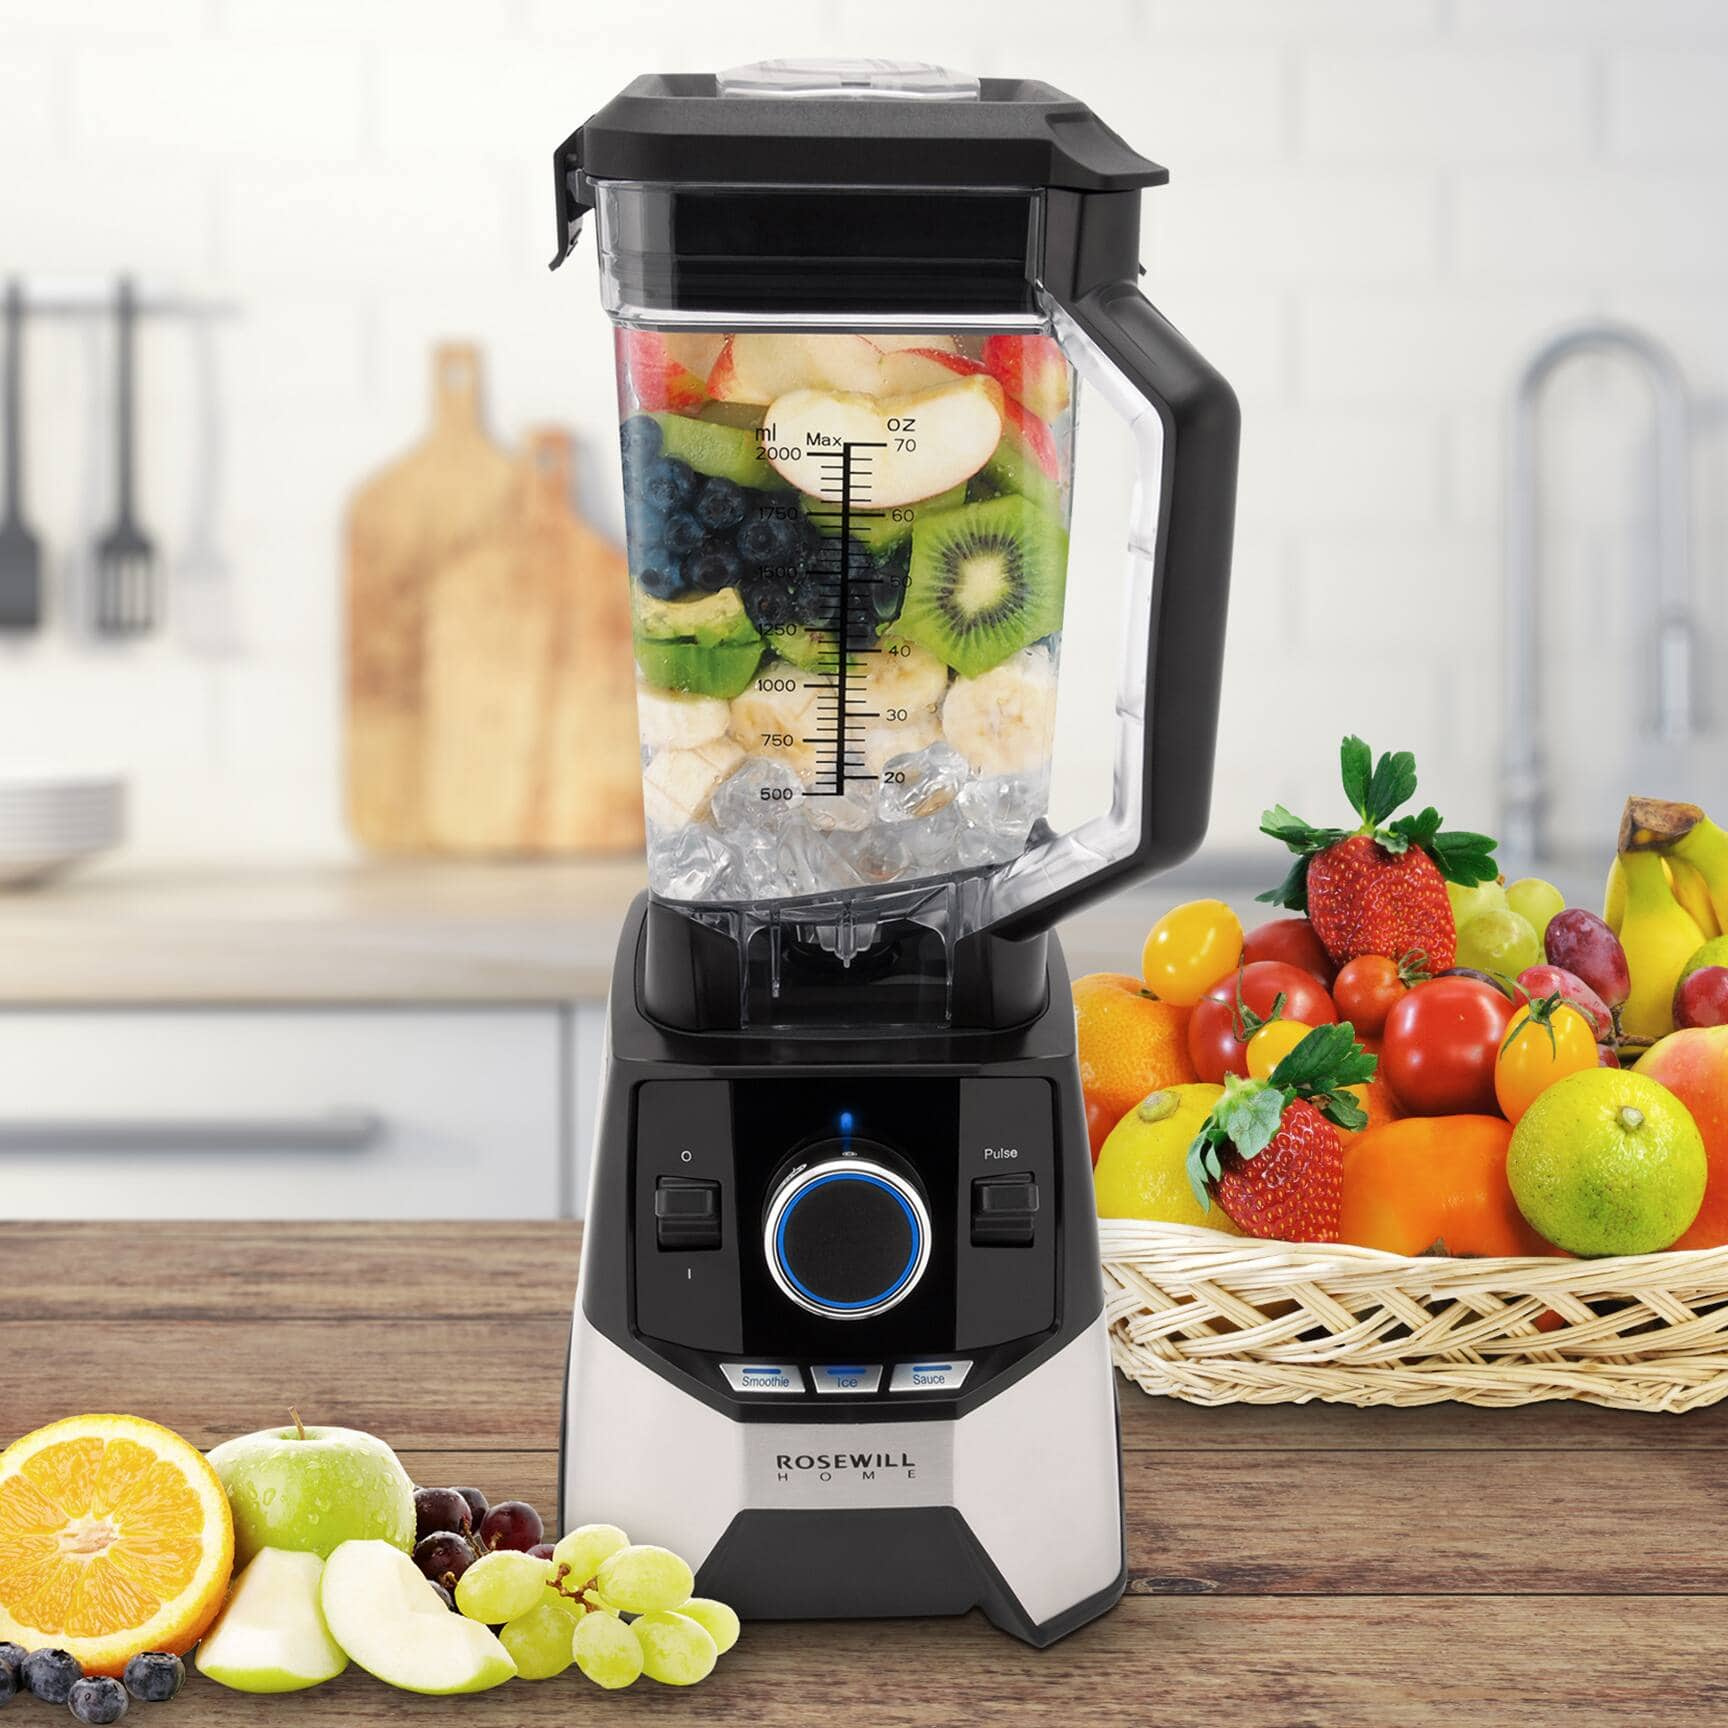 Rosewill Professional Blender $62.99 + Free Shipping